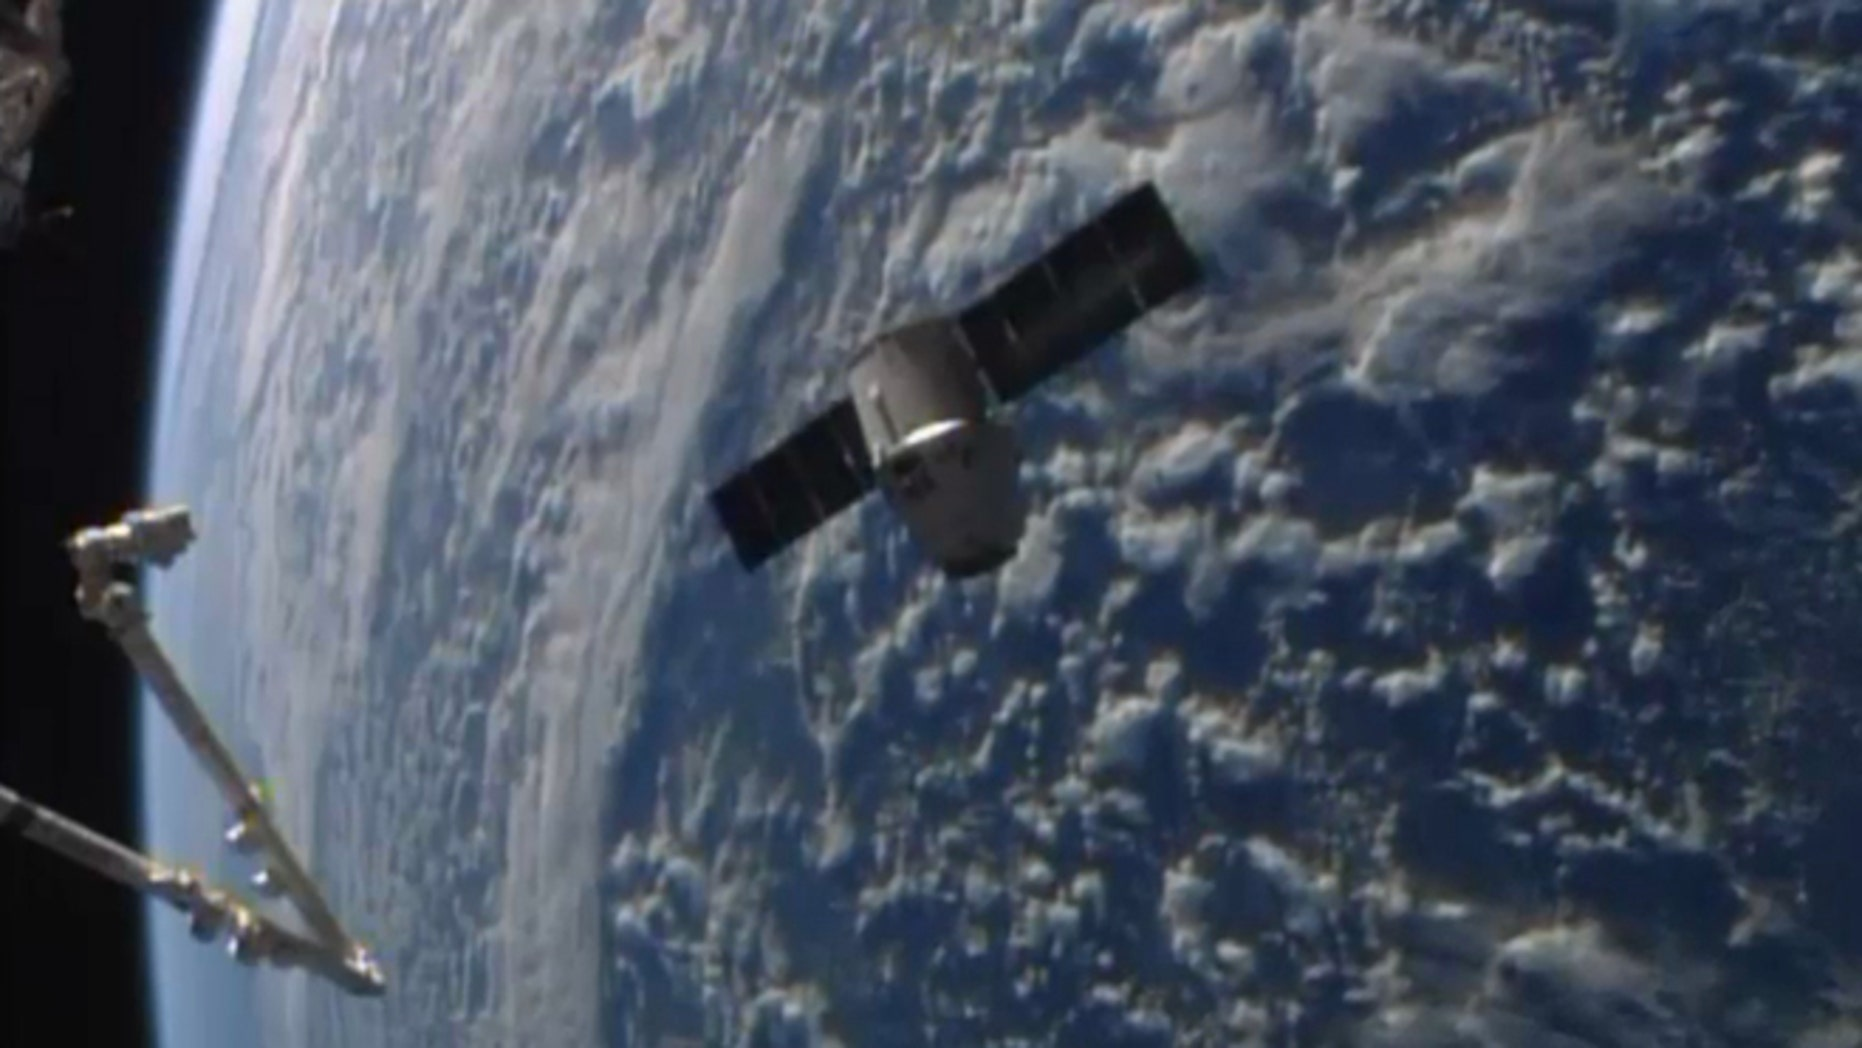 April 20, 2014: This frame grabbed image from NASA-TV shows the SpaceX Dragon resupply capsule approaching the International Space Station.